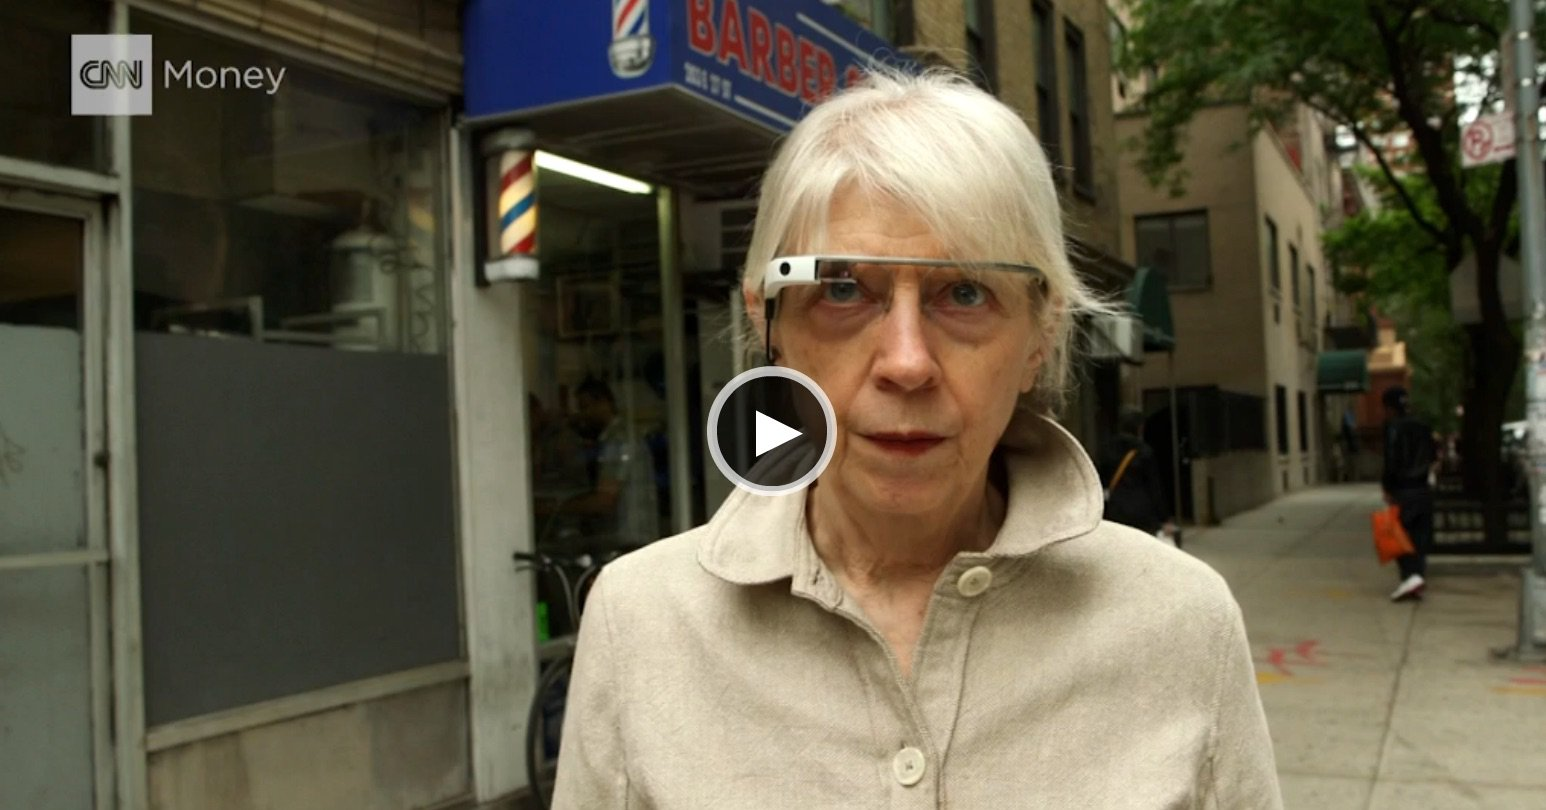 There_s_finally_something_awesome_to_do_with_Google_Glass_-_Jun__9__2015